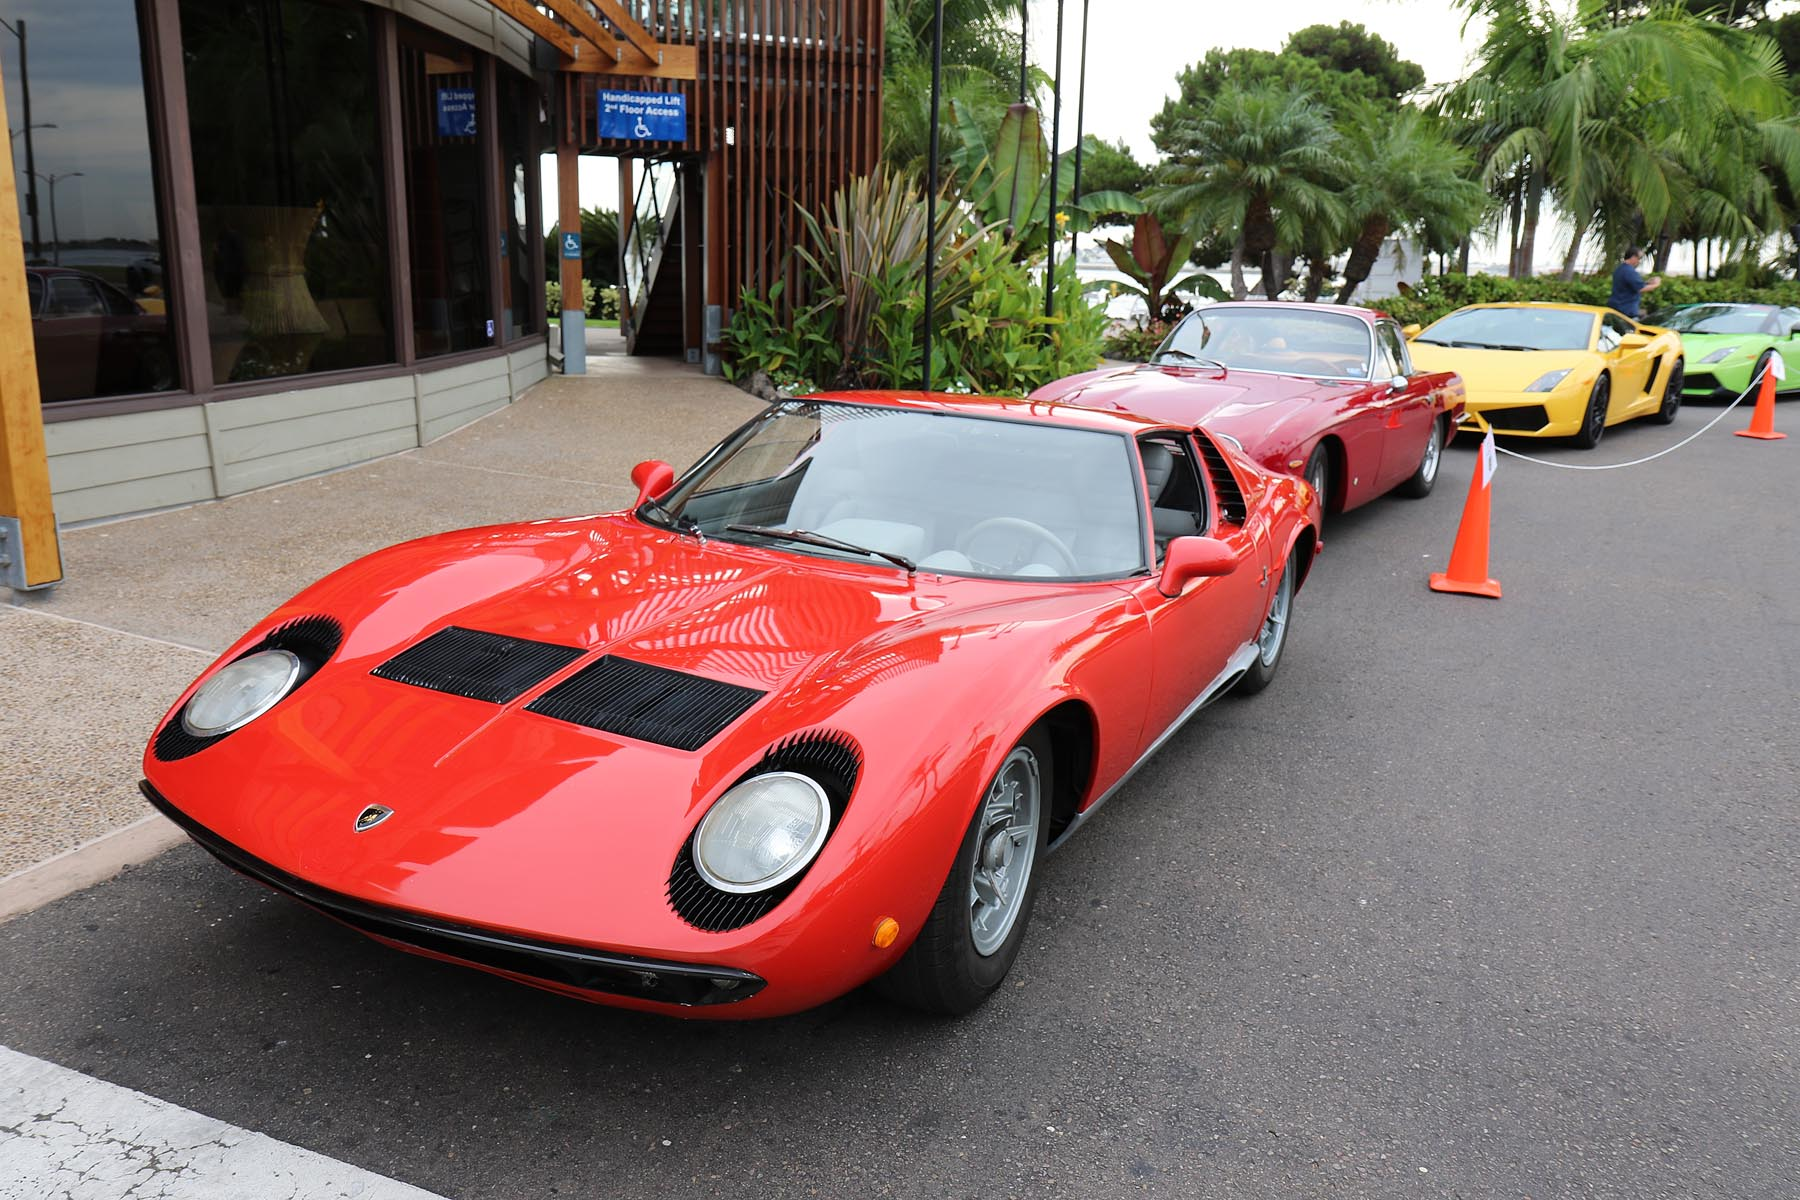 Andrew's Miura in the Lead at Brunch